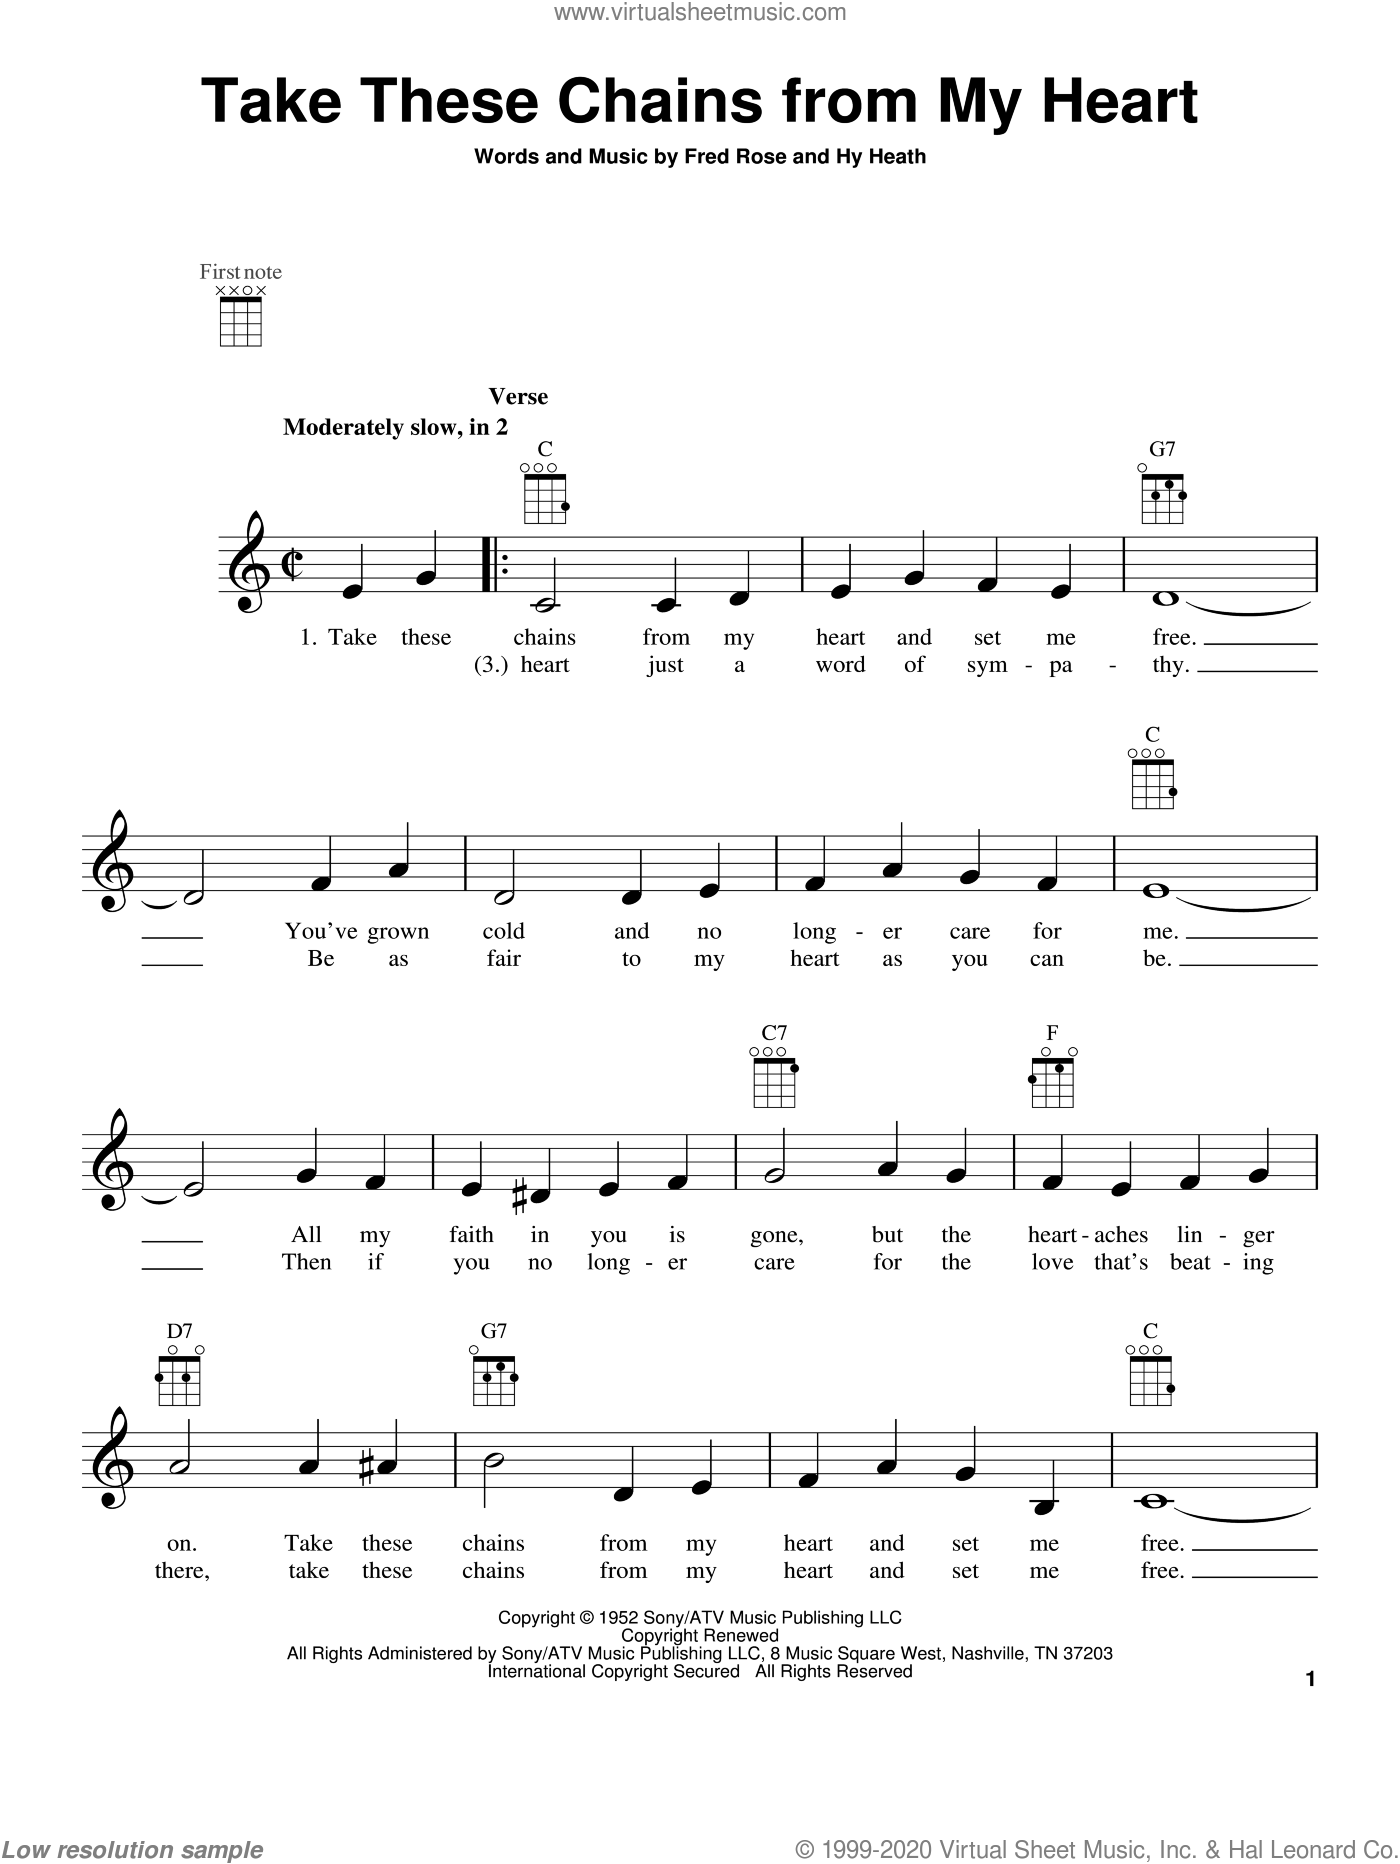 Take These Chains From My Heart sheet music for ukulele by Hy Heath, Fred Rose and Hank Williams. Score Image Preview.